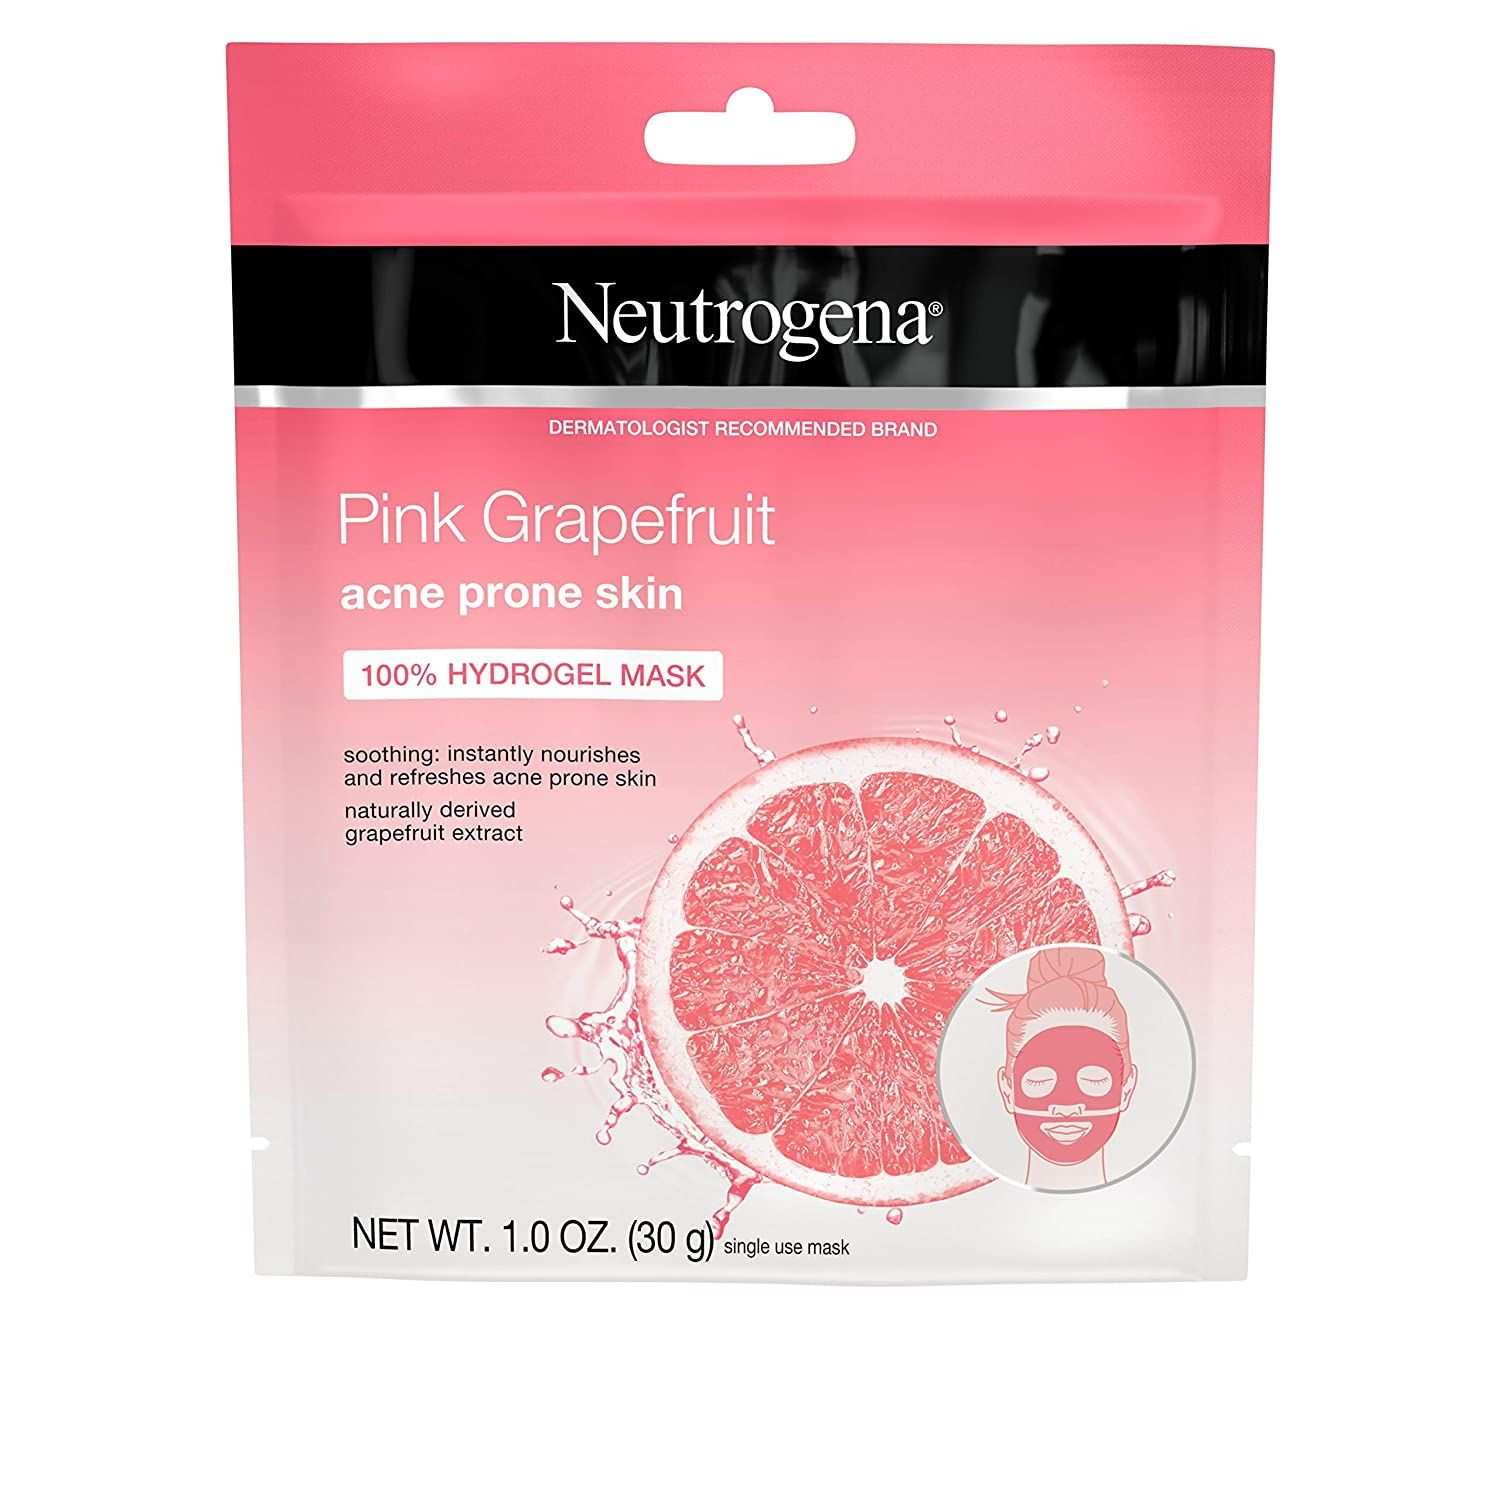 Photo of Neutrogena Pink Grapefruit 100% Hydrogel Acne Sheet Face Mask with Naturally-Derived Grapefruit Extract, Single-Use Soothing & Refreshing Acne-Fighting Face Mask, Non-Comedogenic, 1 ct